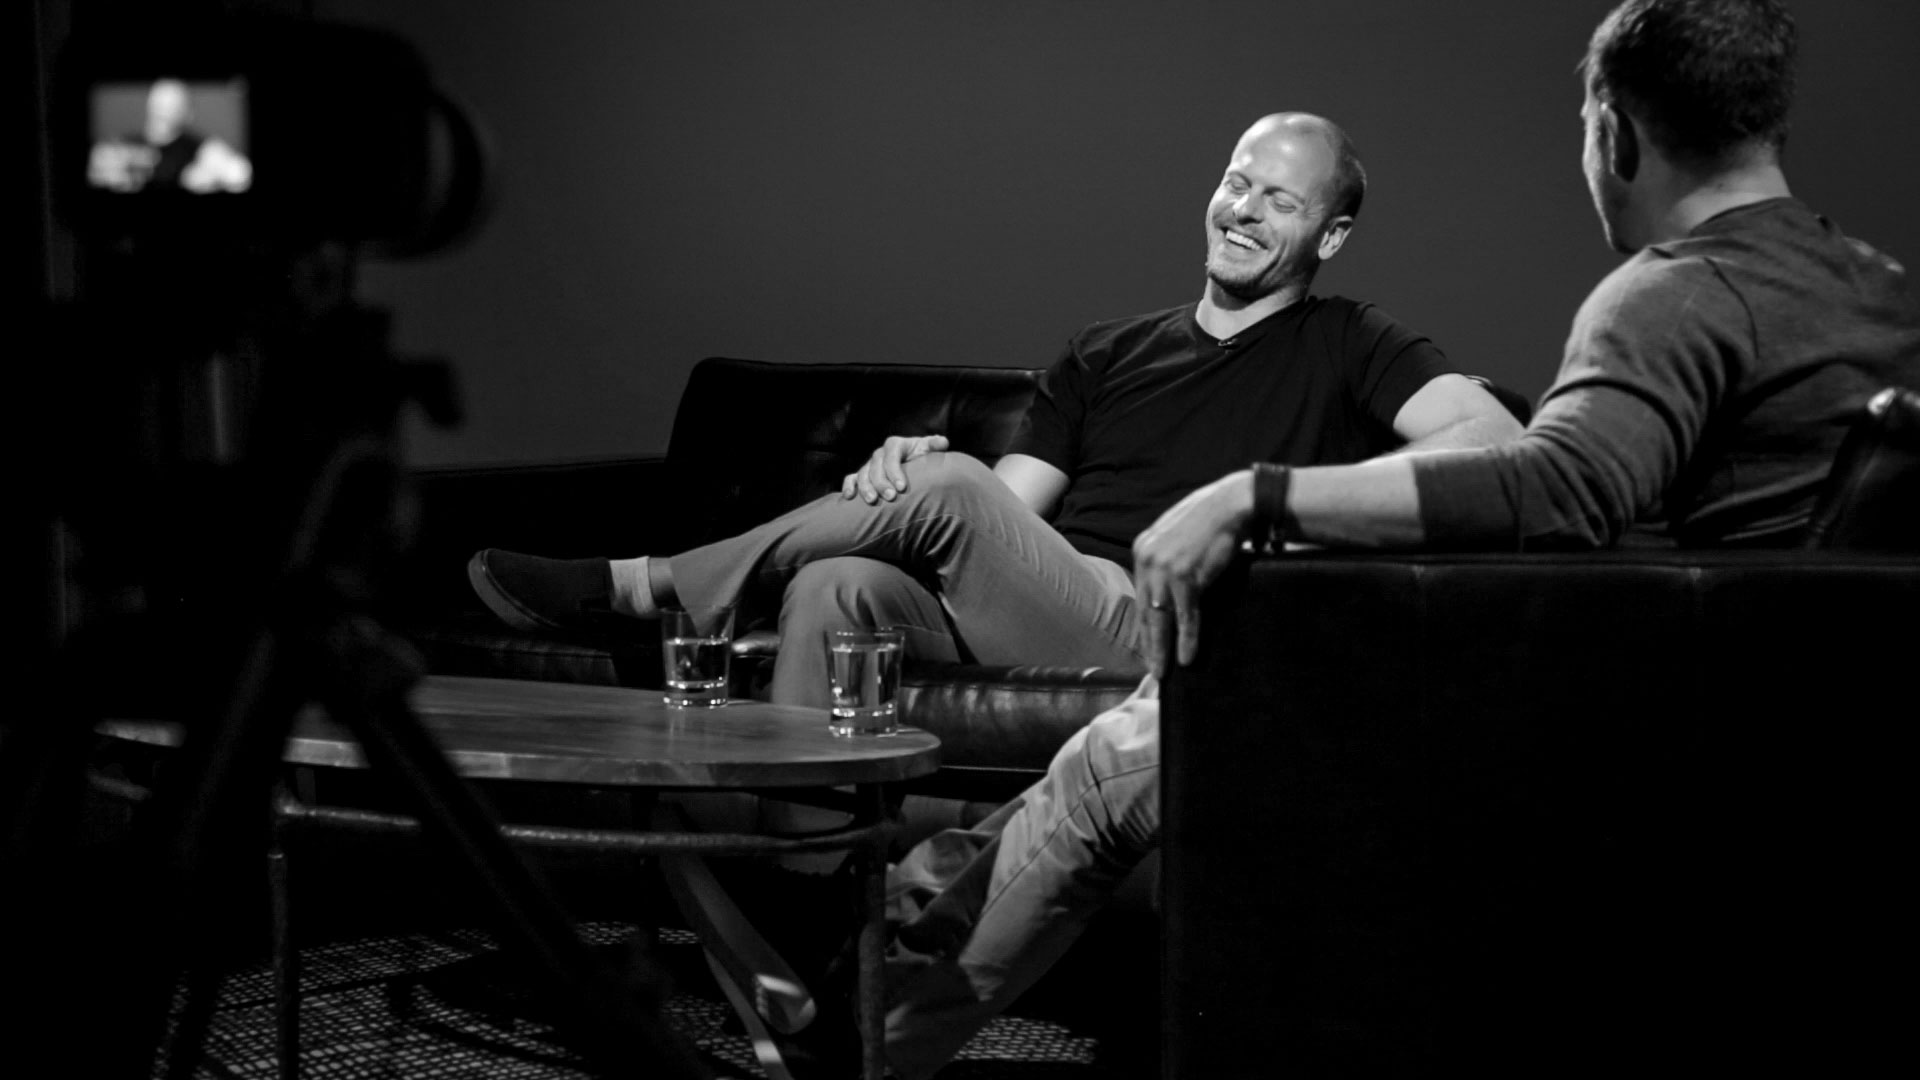 Tim Ferriss on 30 Days of Genius with Chase Jarvis